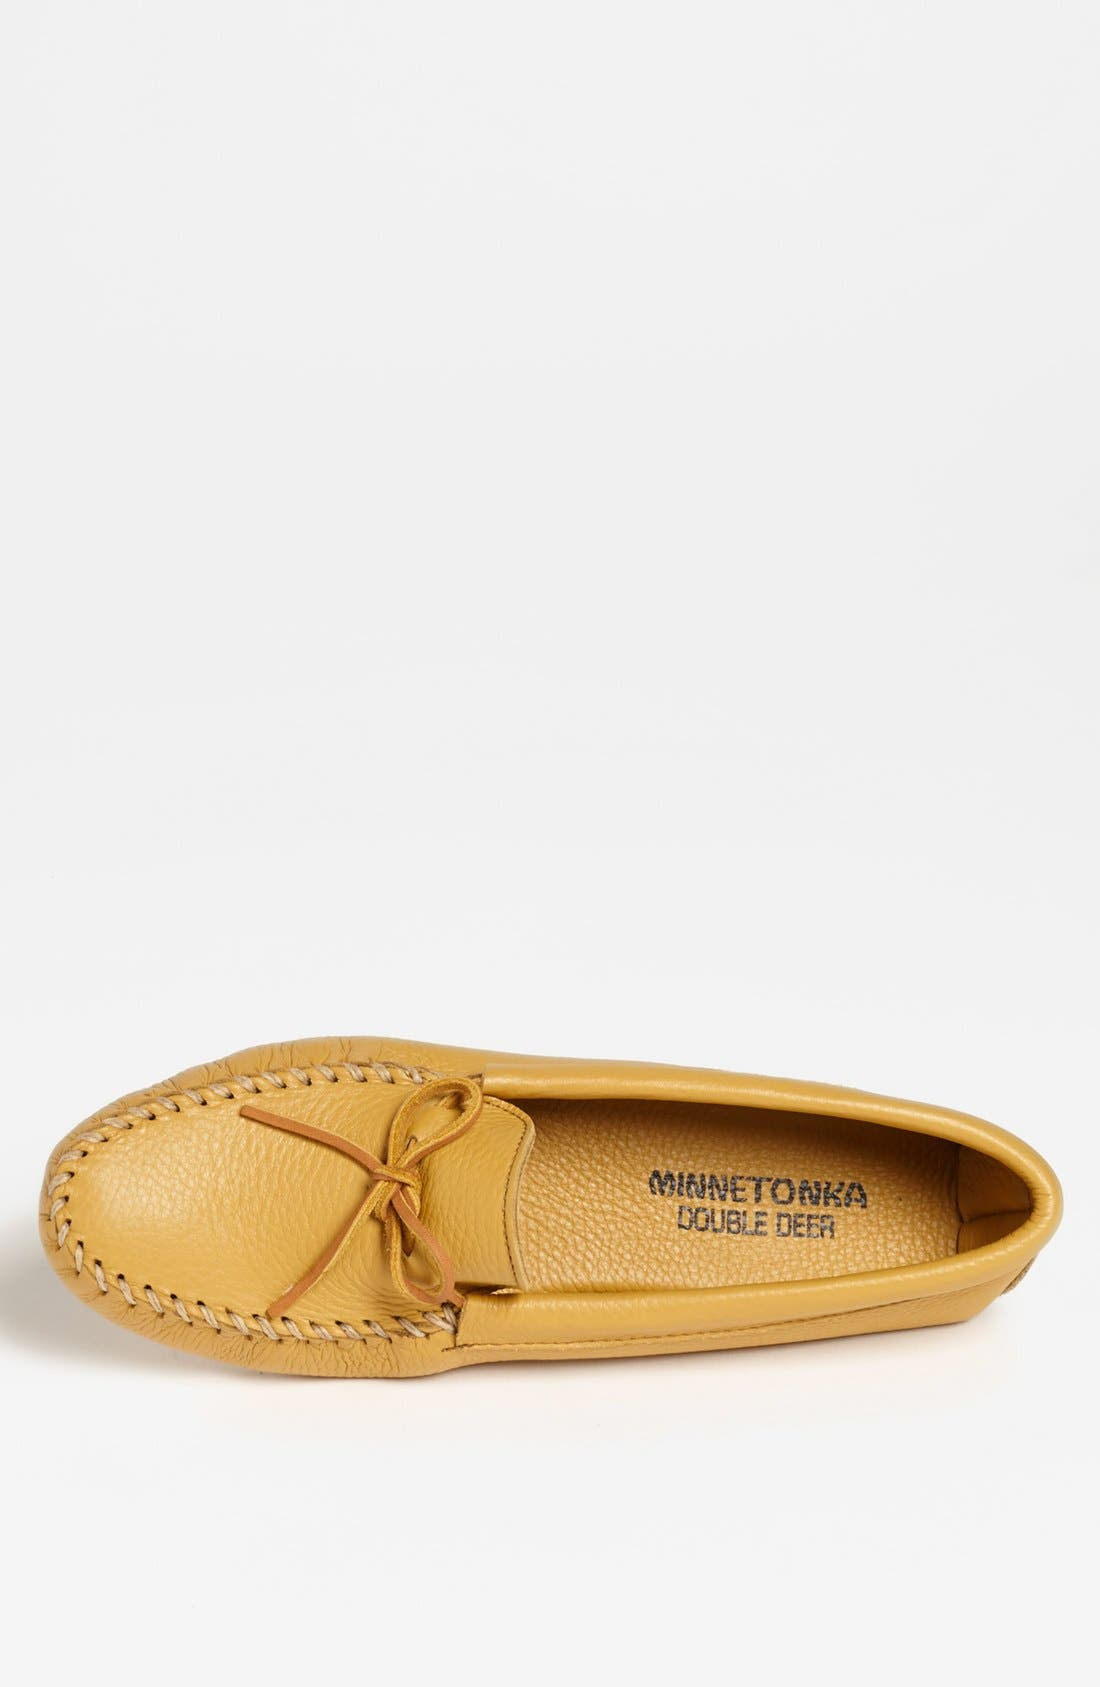 MINNETONKA, Deerskin Moccasin, Alternate thumbnail 3, color, NATURAL DEERSKIN